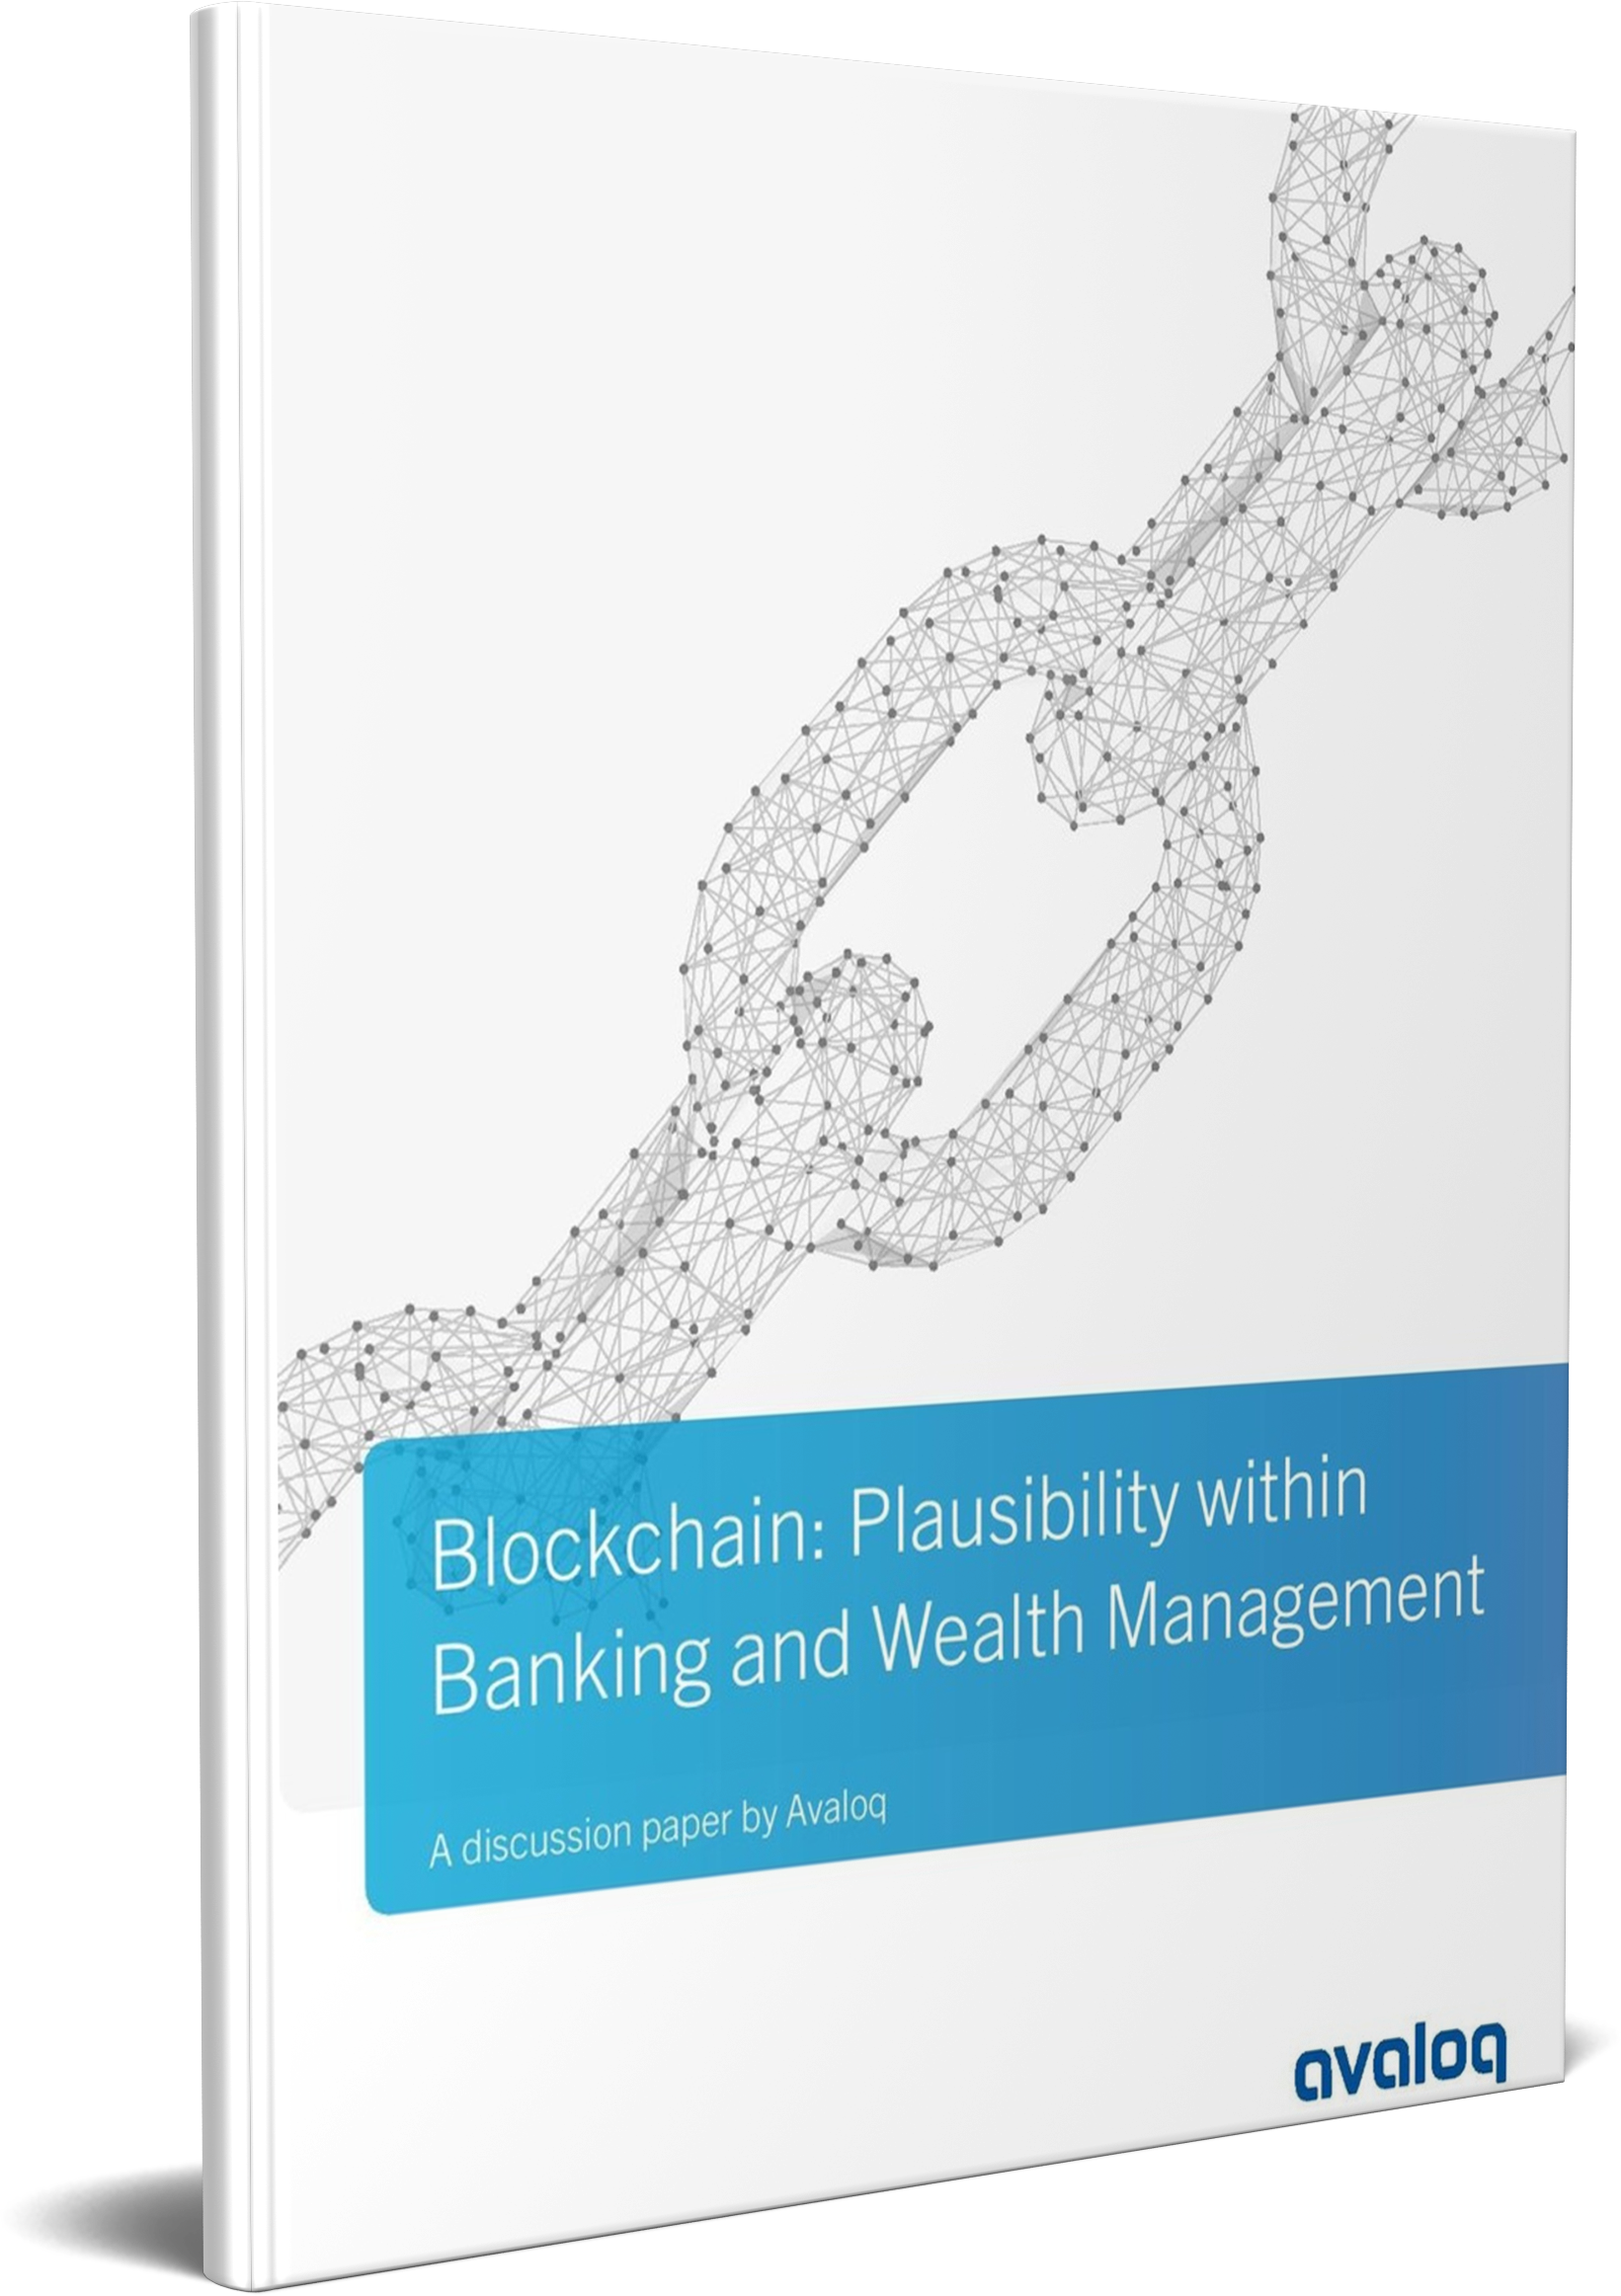 3D Cover_Avaloq Whitepaper Blockchain plausibility within banking and wealth management